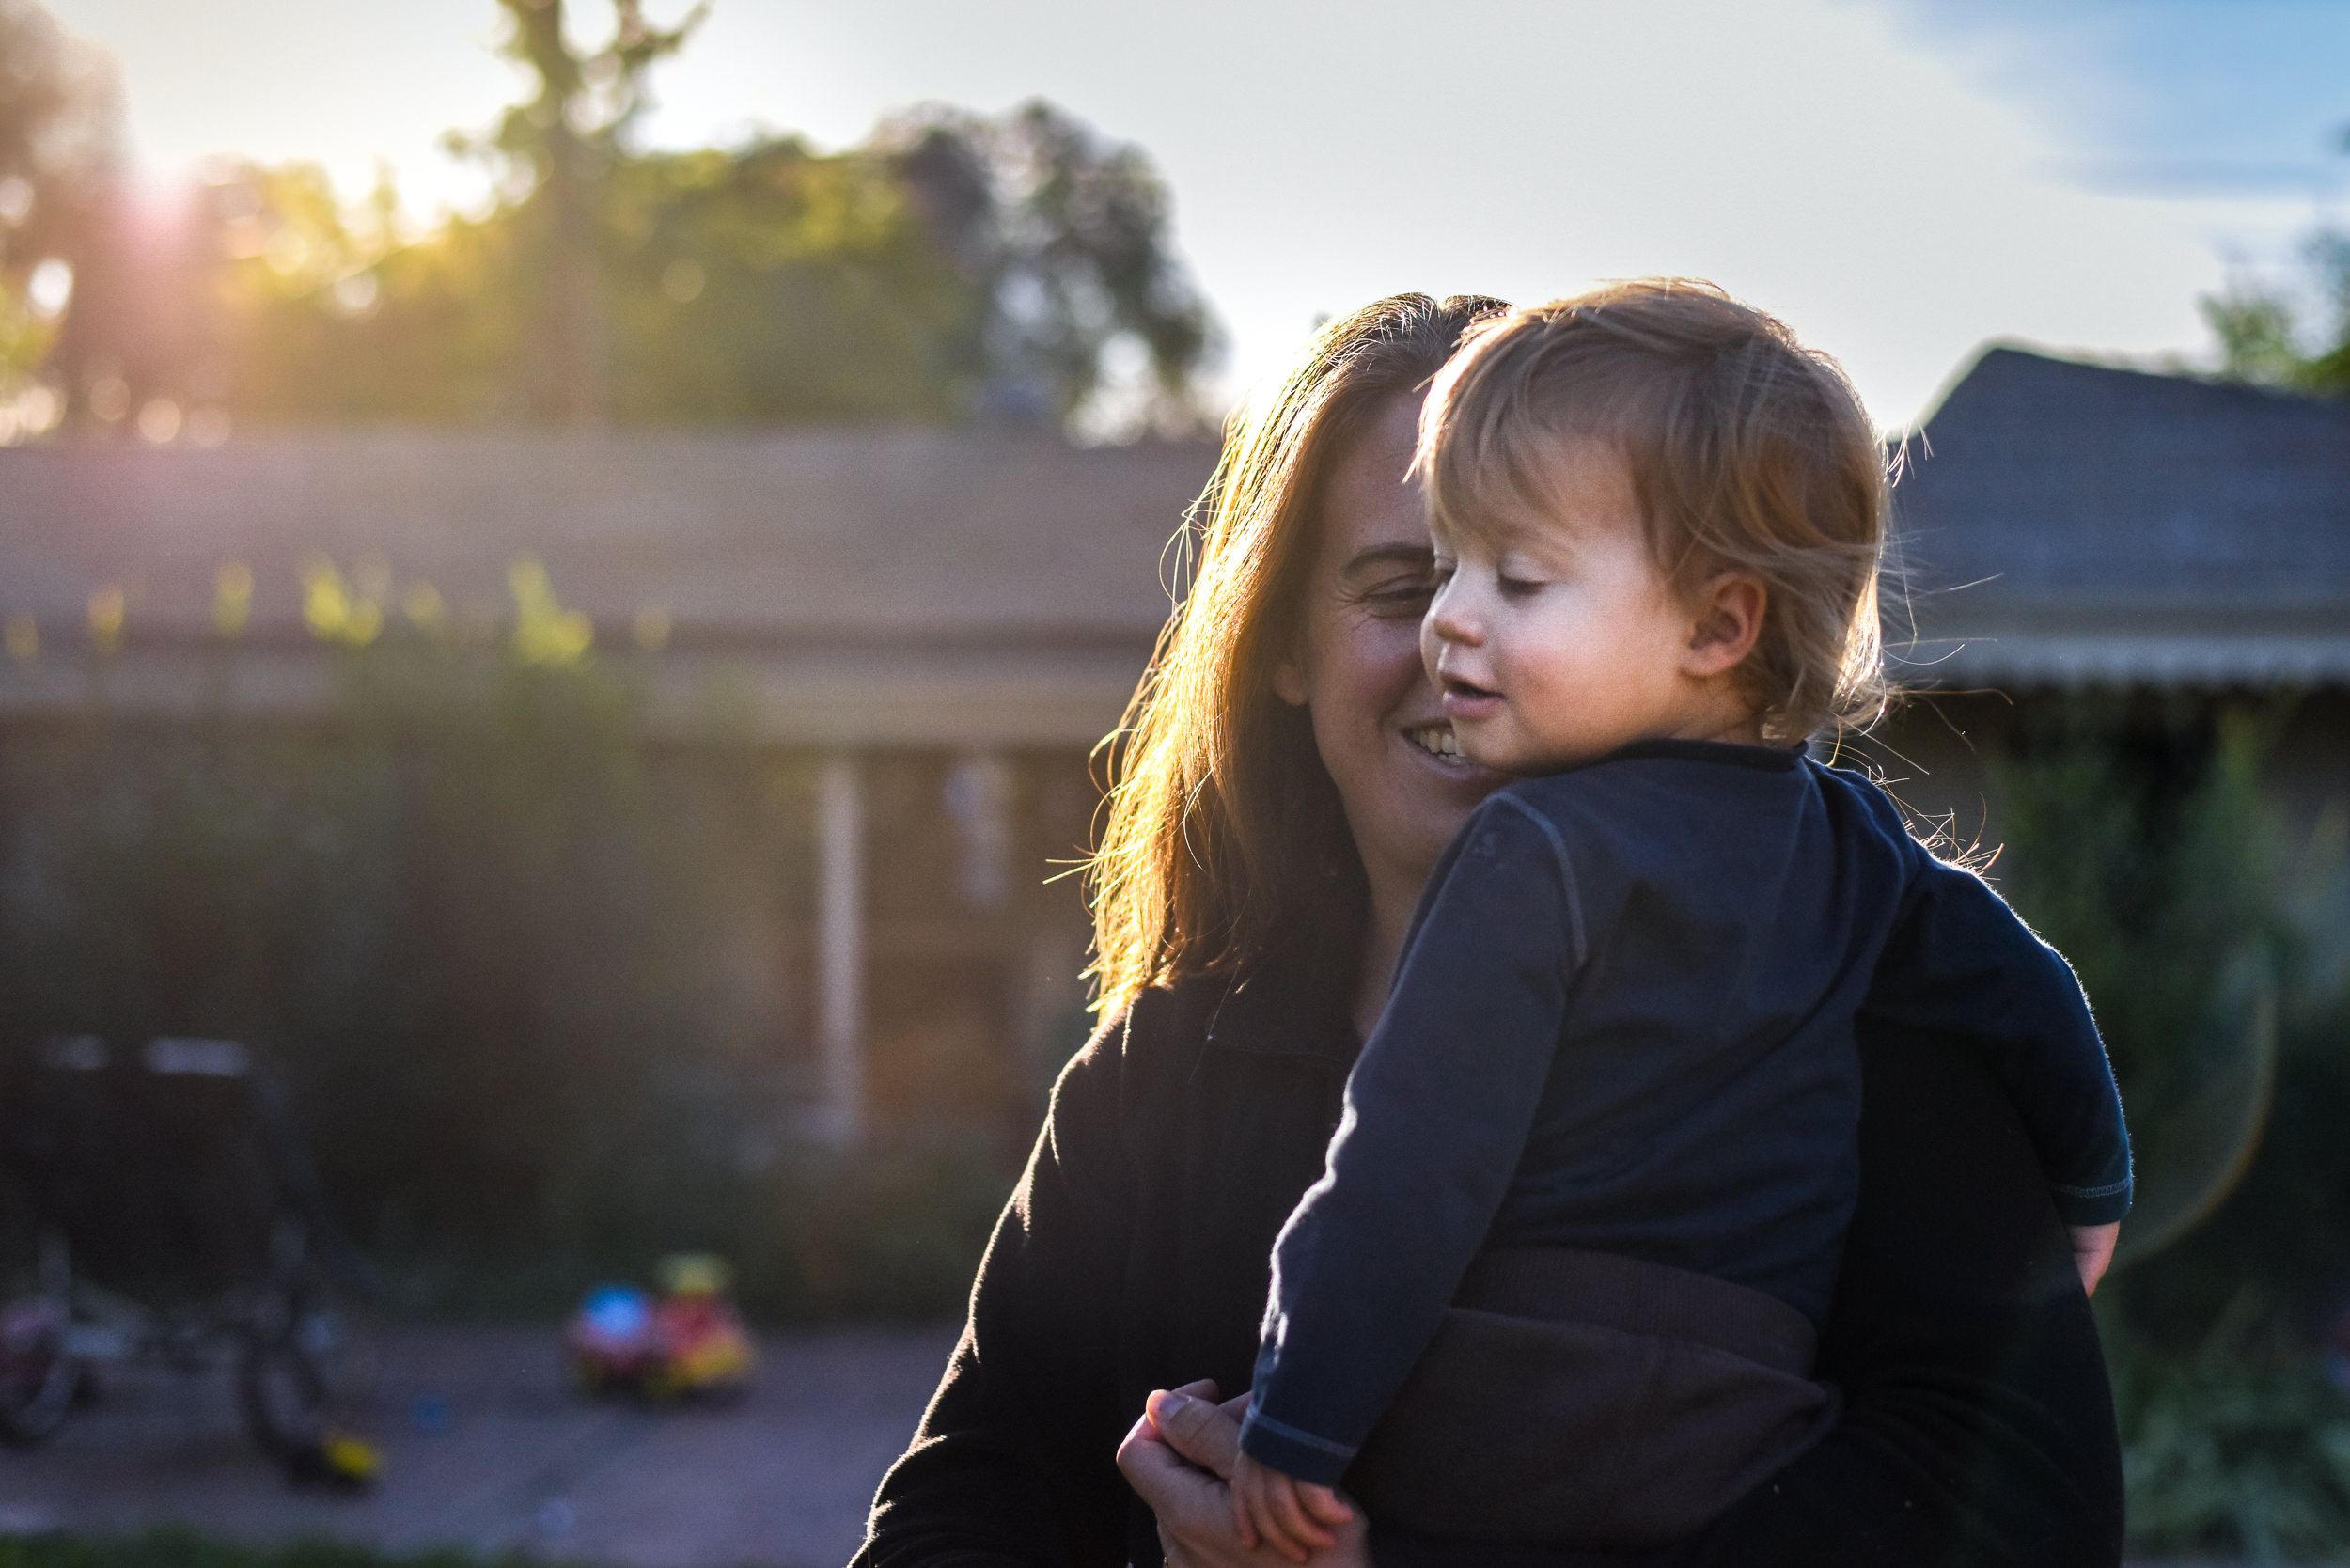 Blog - The Pen & Camera - Gratitude Journal, Inspirational, Spring, Writing, Denver, Colorado, Friendship -  Documentary Childhood Photography - mom with boy later afternoon sunset